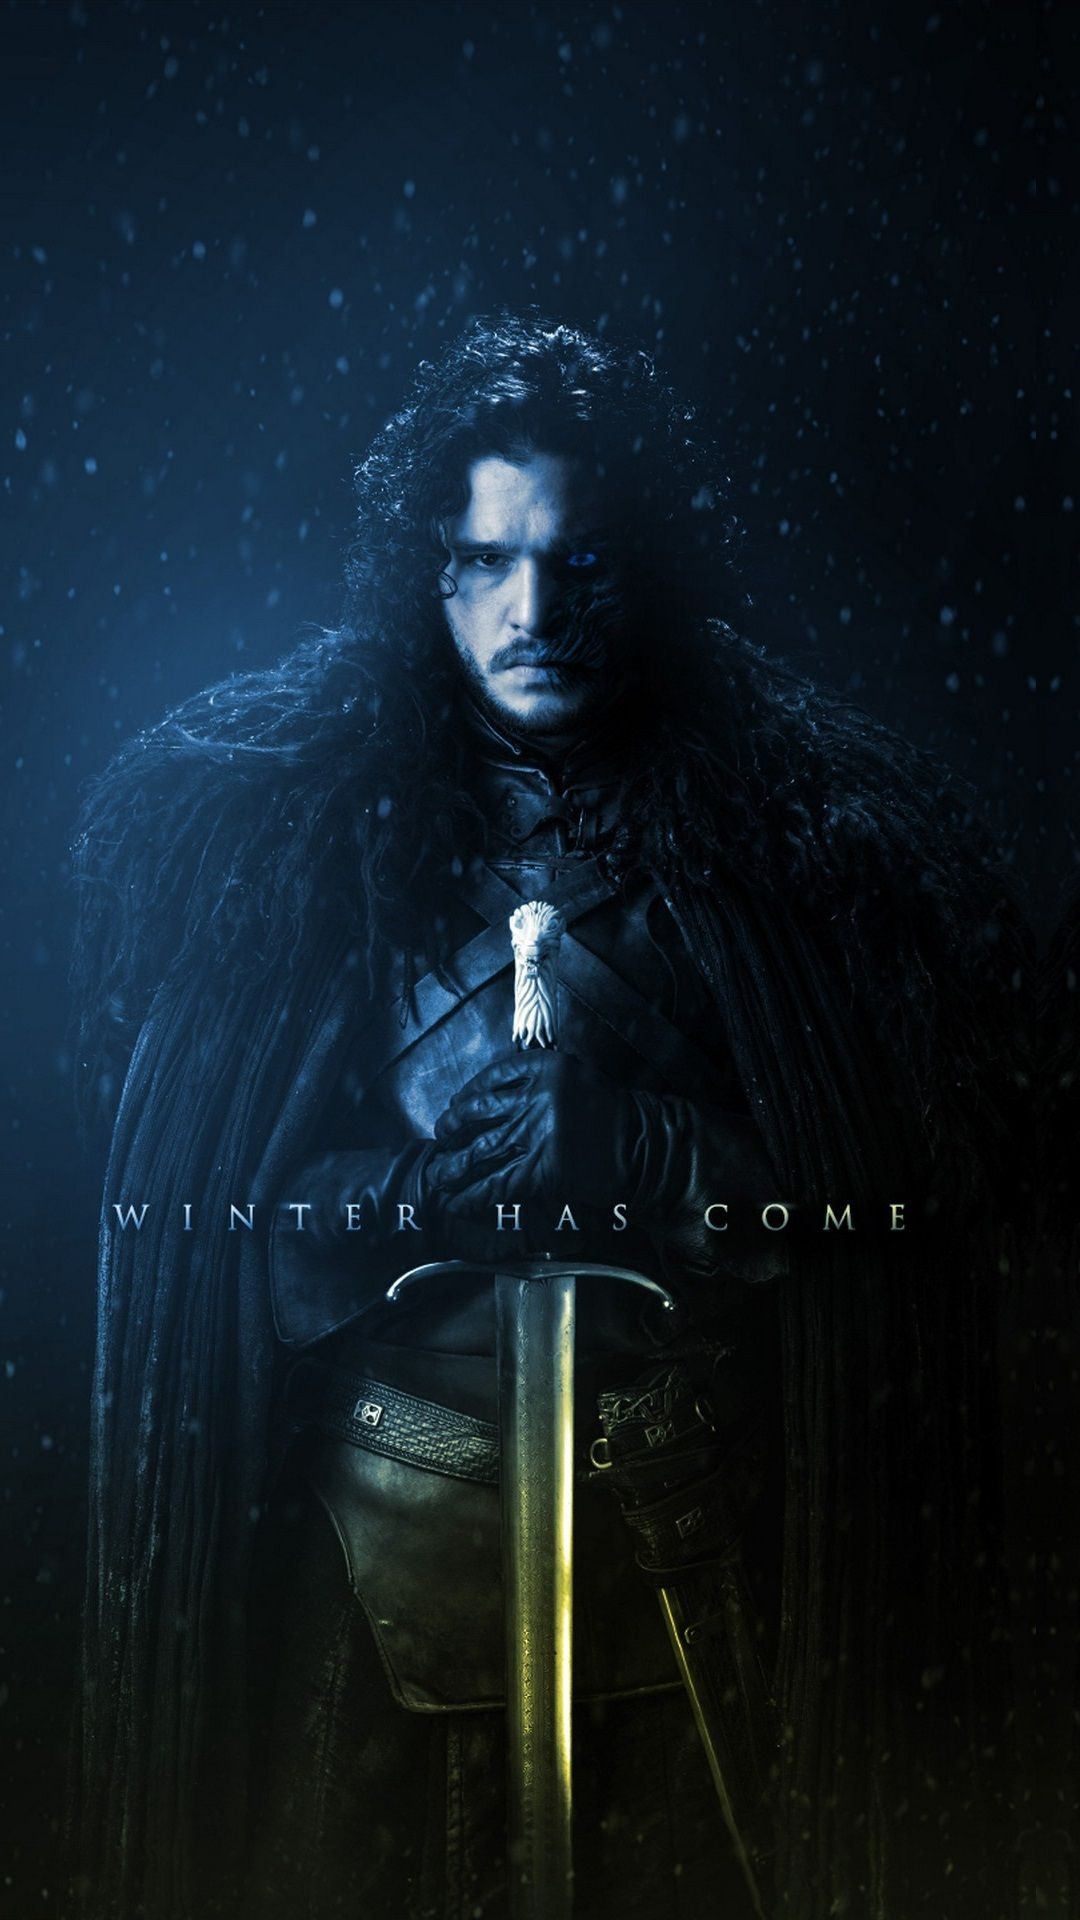 Wallpaper Iphone Game 19 In 2020 Winter Is Coming Wallpaper Got Game Of Thrones Game Of Thrones Poster